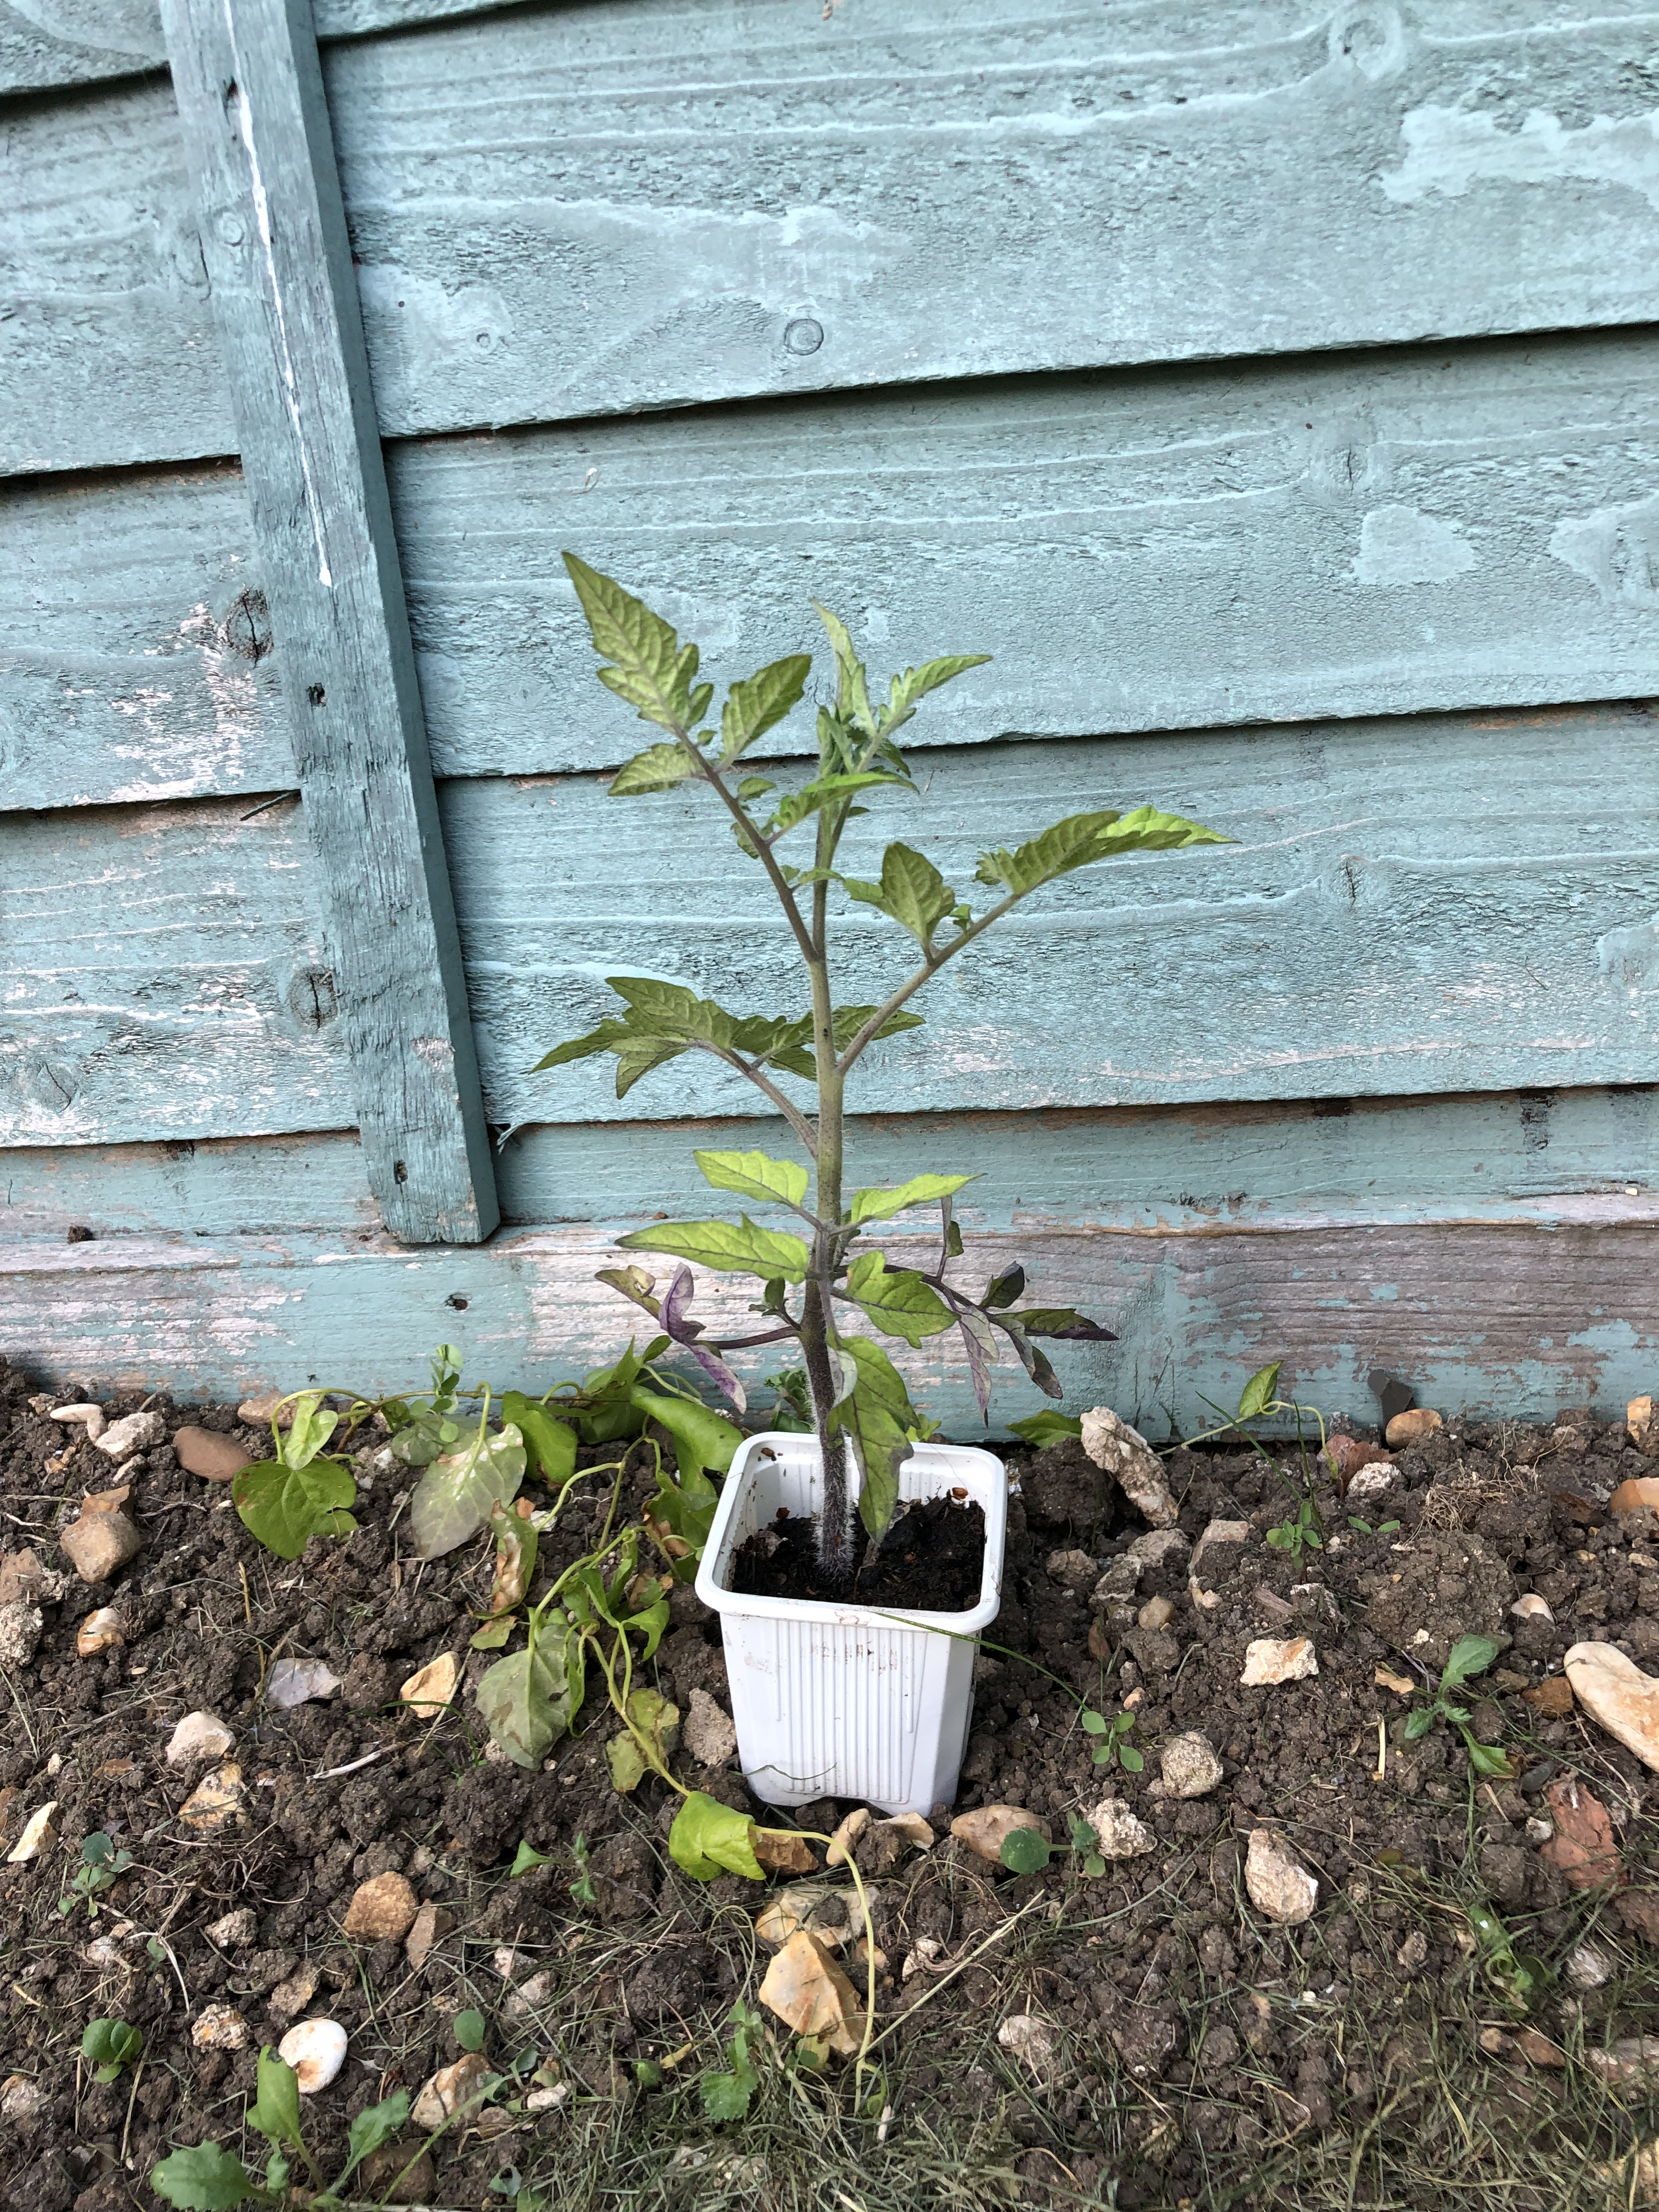 pTomato plant arrives at sunflower competition